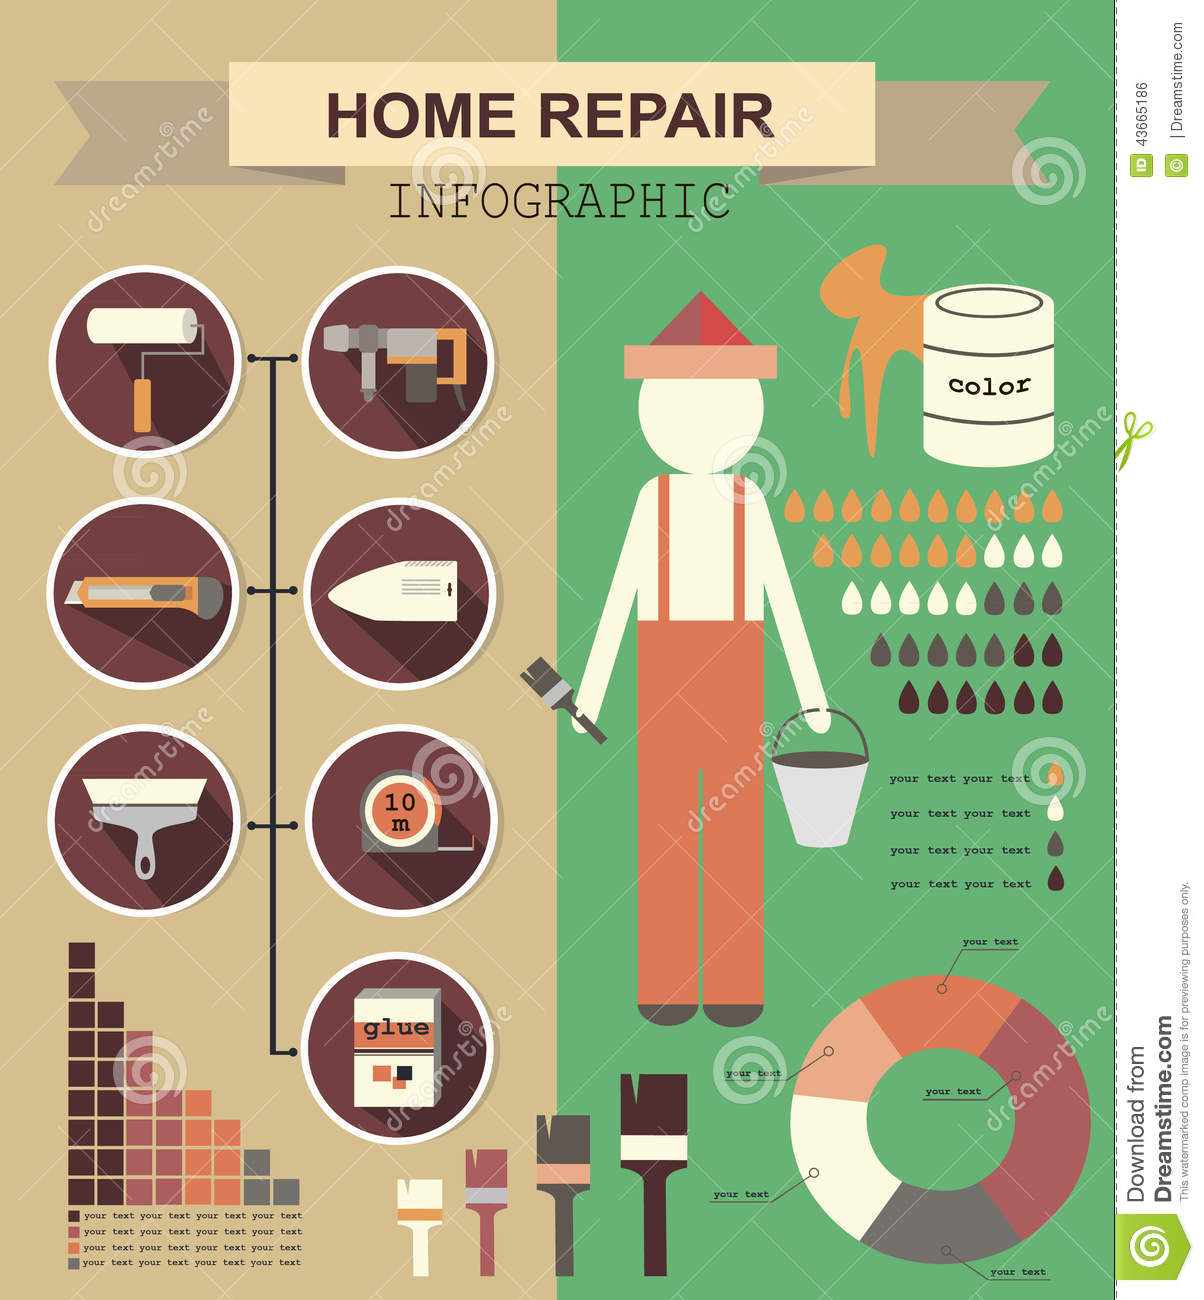 Infographic House Remodel Stock Vector - Image: 43665186